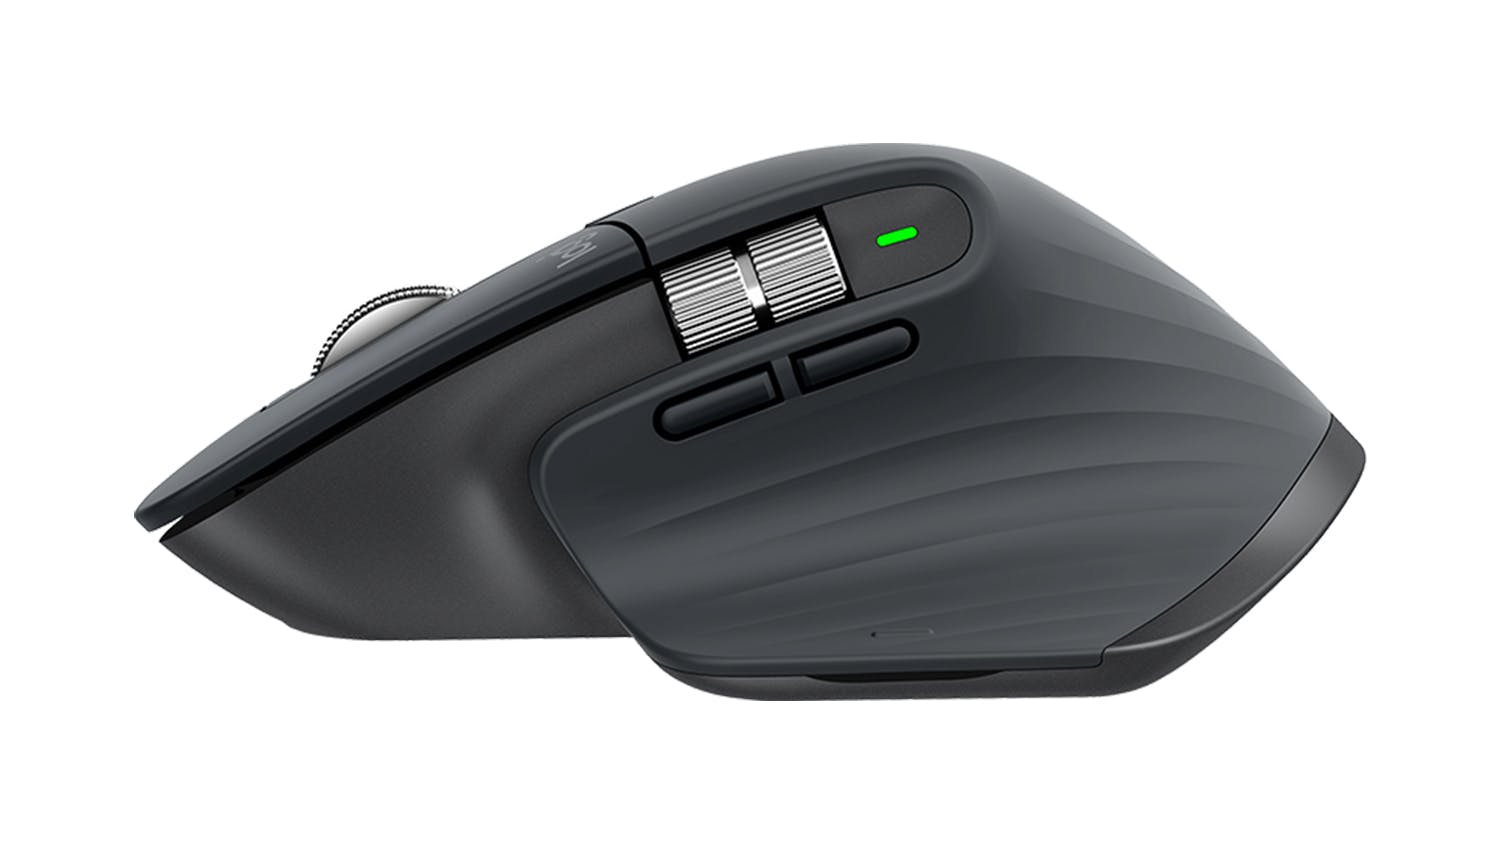 Logitech MX Master 3 Wireless Mouse